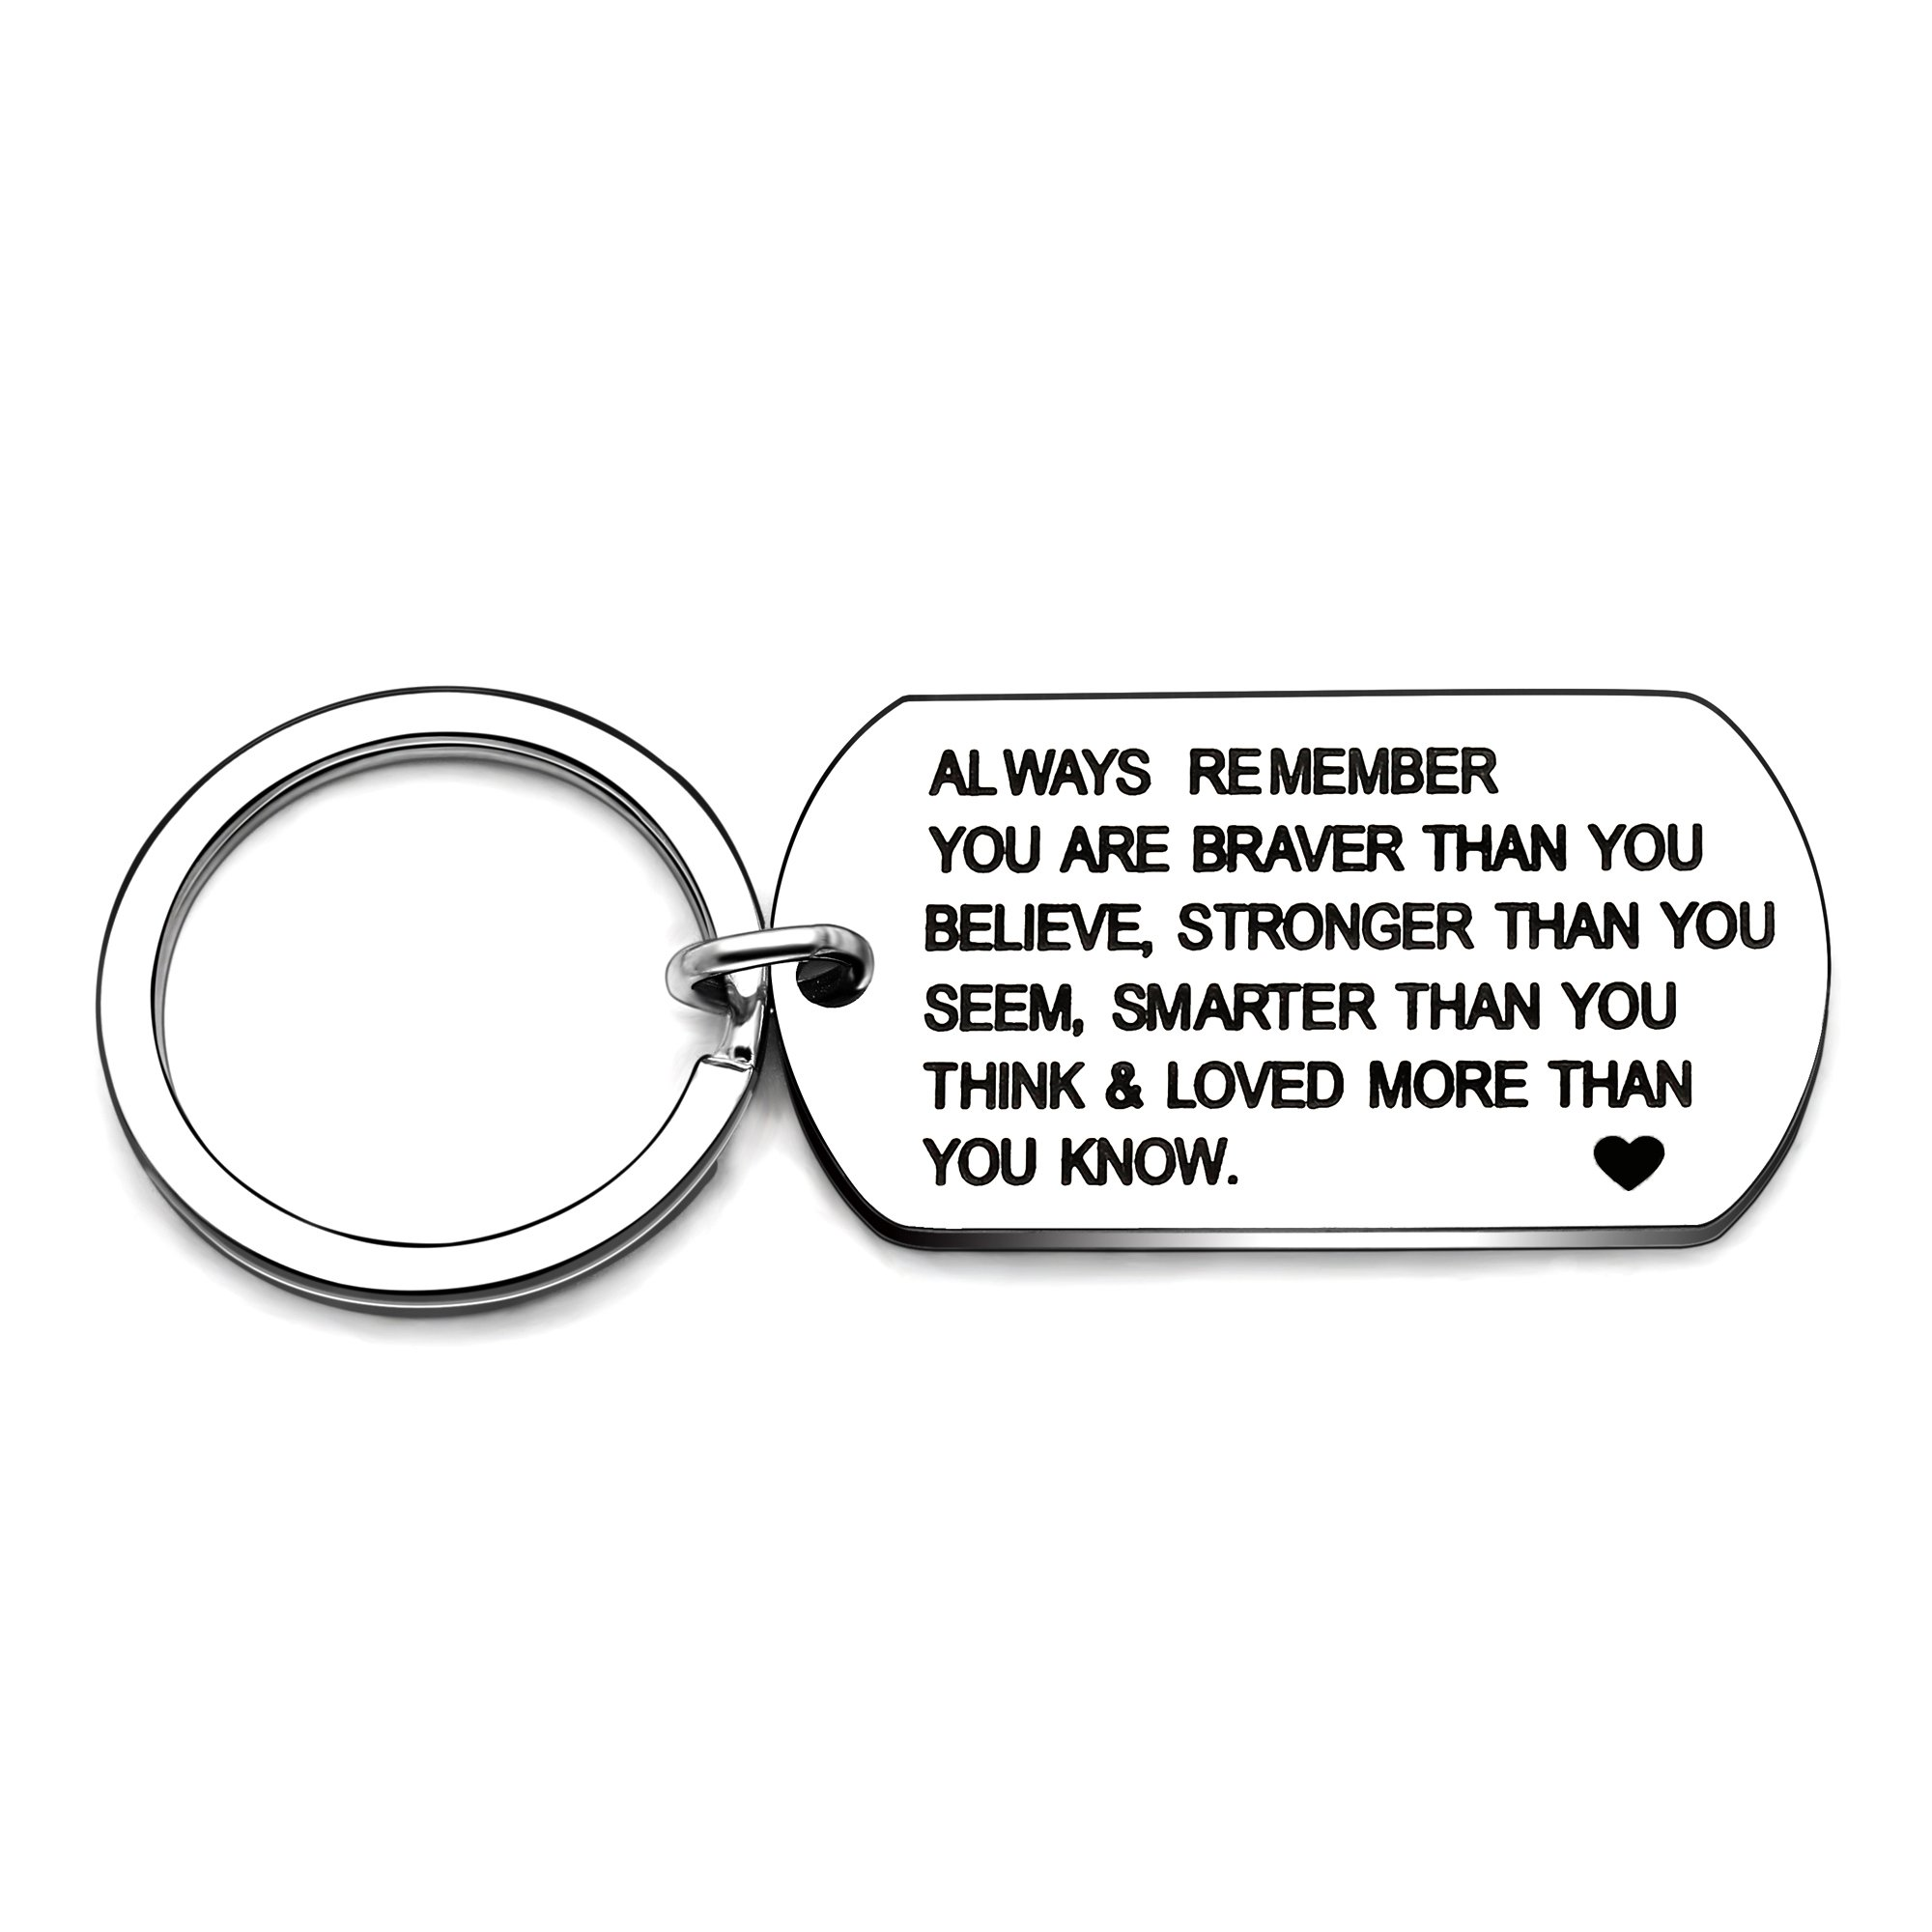 Stainless Steel Key Chain Ring You are Braver Stronger Smarter Than You Think Pendant Family Friend Gift (Style B Stainless Steel) by lauhonmin (Image #1)